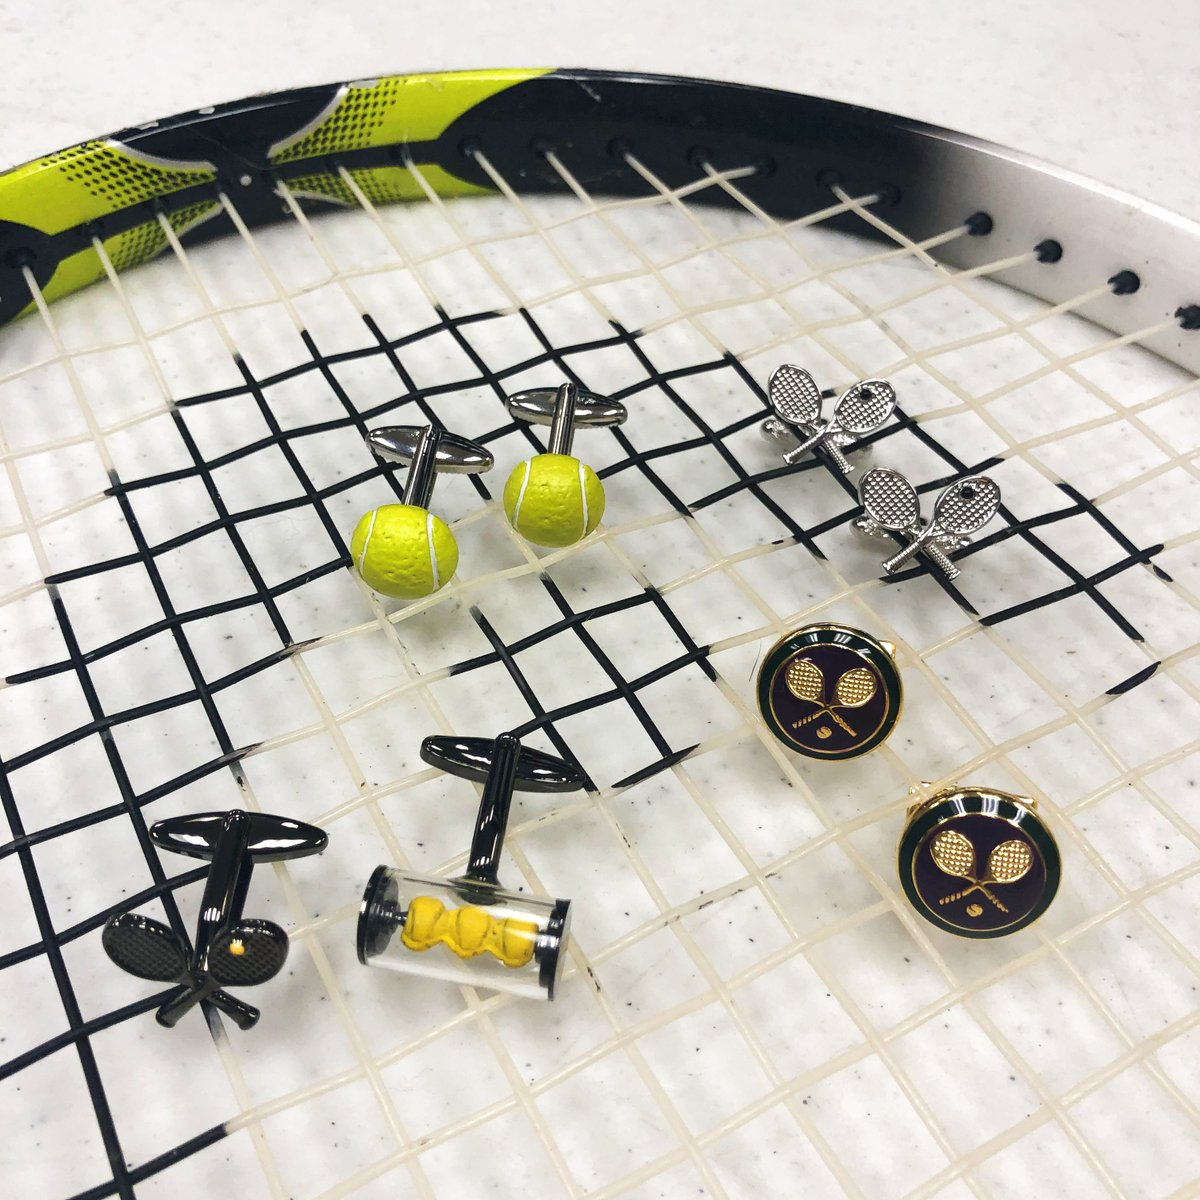 Happy Tennis Day! Which tennis cufflinks are your favorite?  Shop Tennis Cufflinks: http://ow.ly/Ynu150ysQAl   #TennisDay #HappyTennisDay #Tennis #TennisPlayer #TennisRacket #TennisBall #Racket #TennisCourt #TennisLife #TennisPlayers #TennisAddict #Cufflinks #CufflinksDepotpic.twitter.com/kDuW1jp607